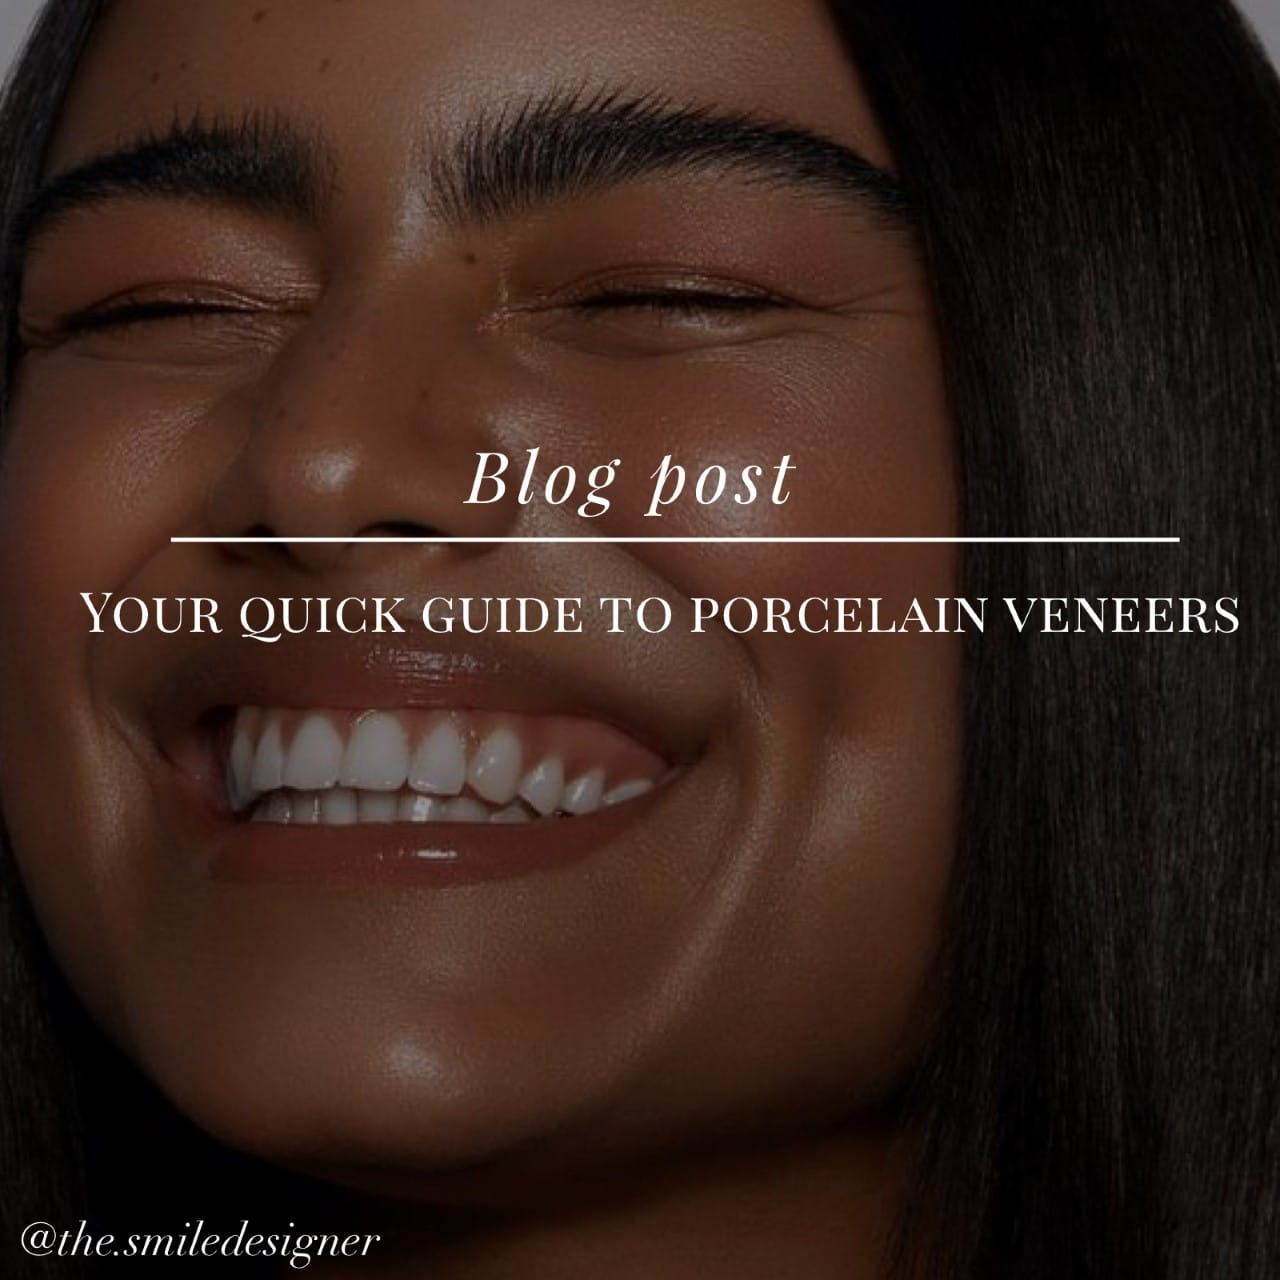 Your Quick Guide to Porcelain Veneers